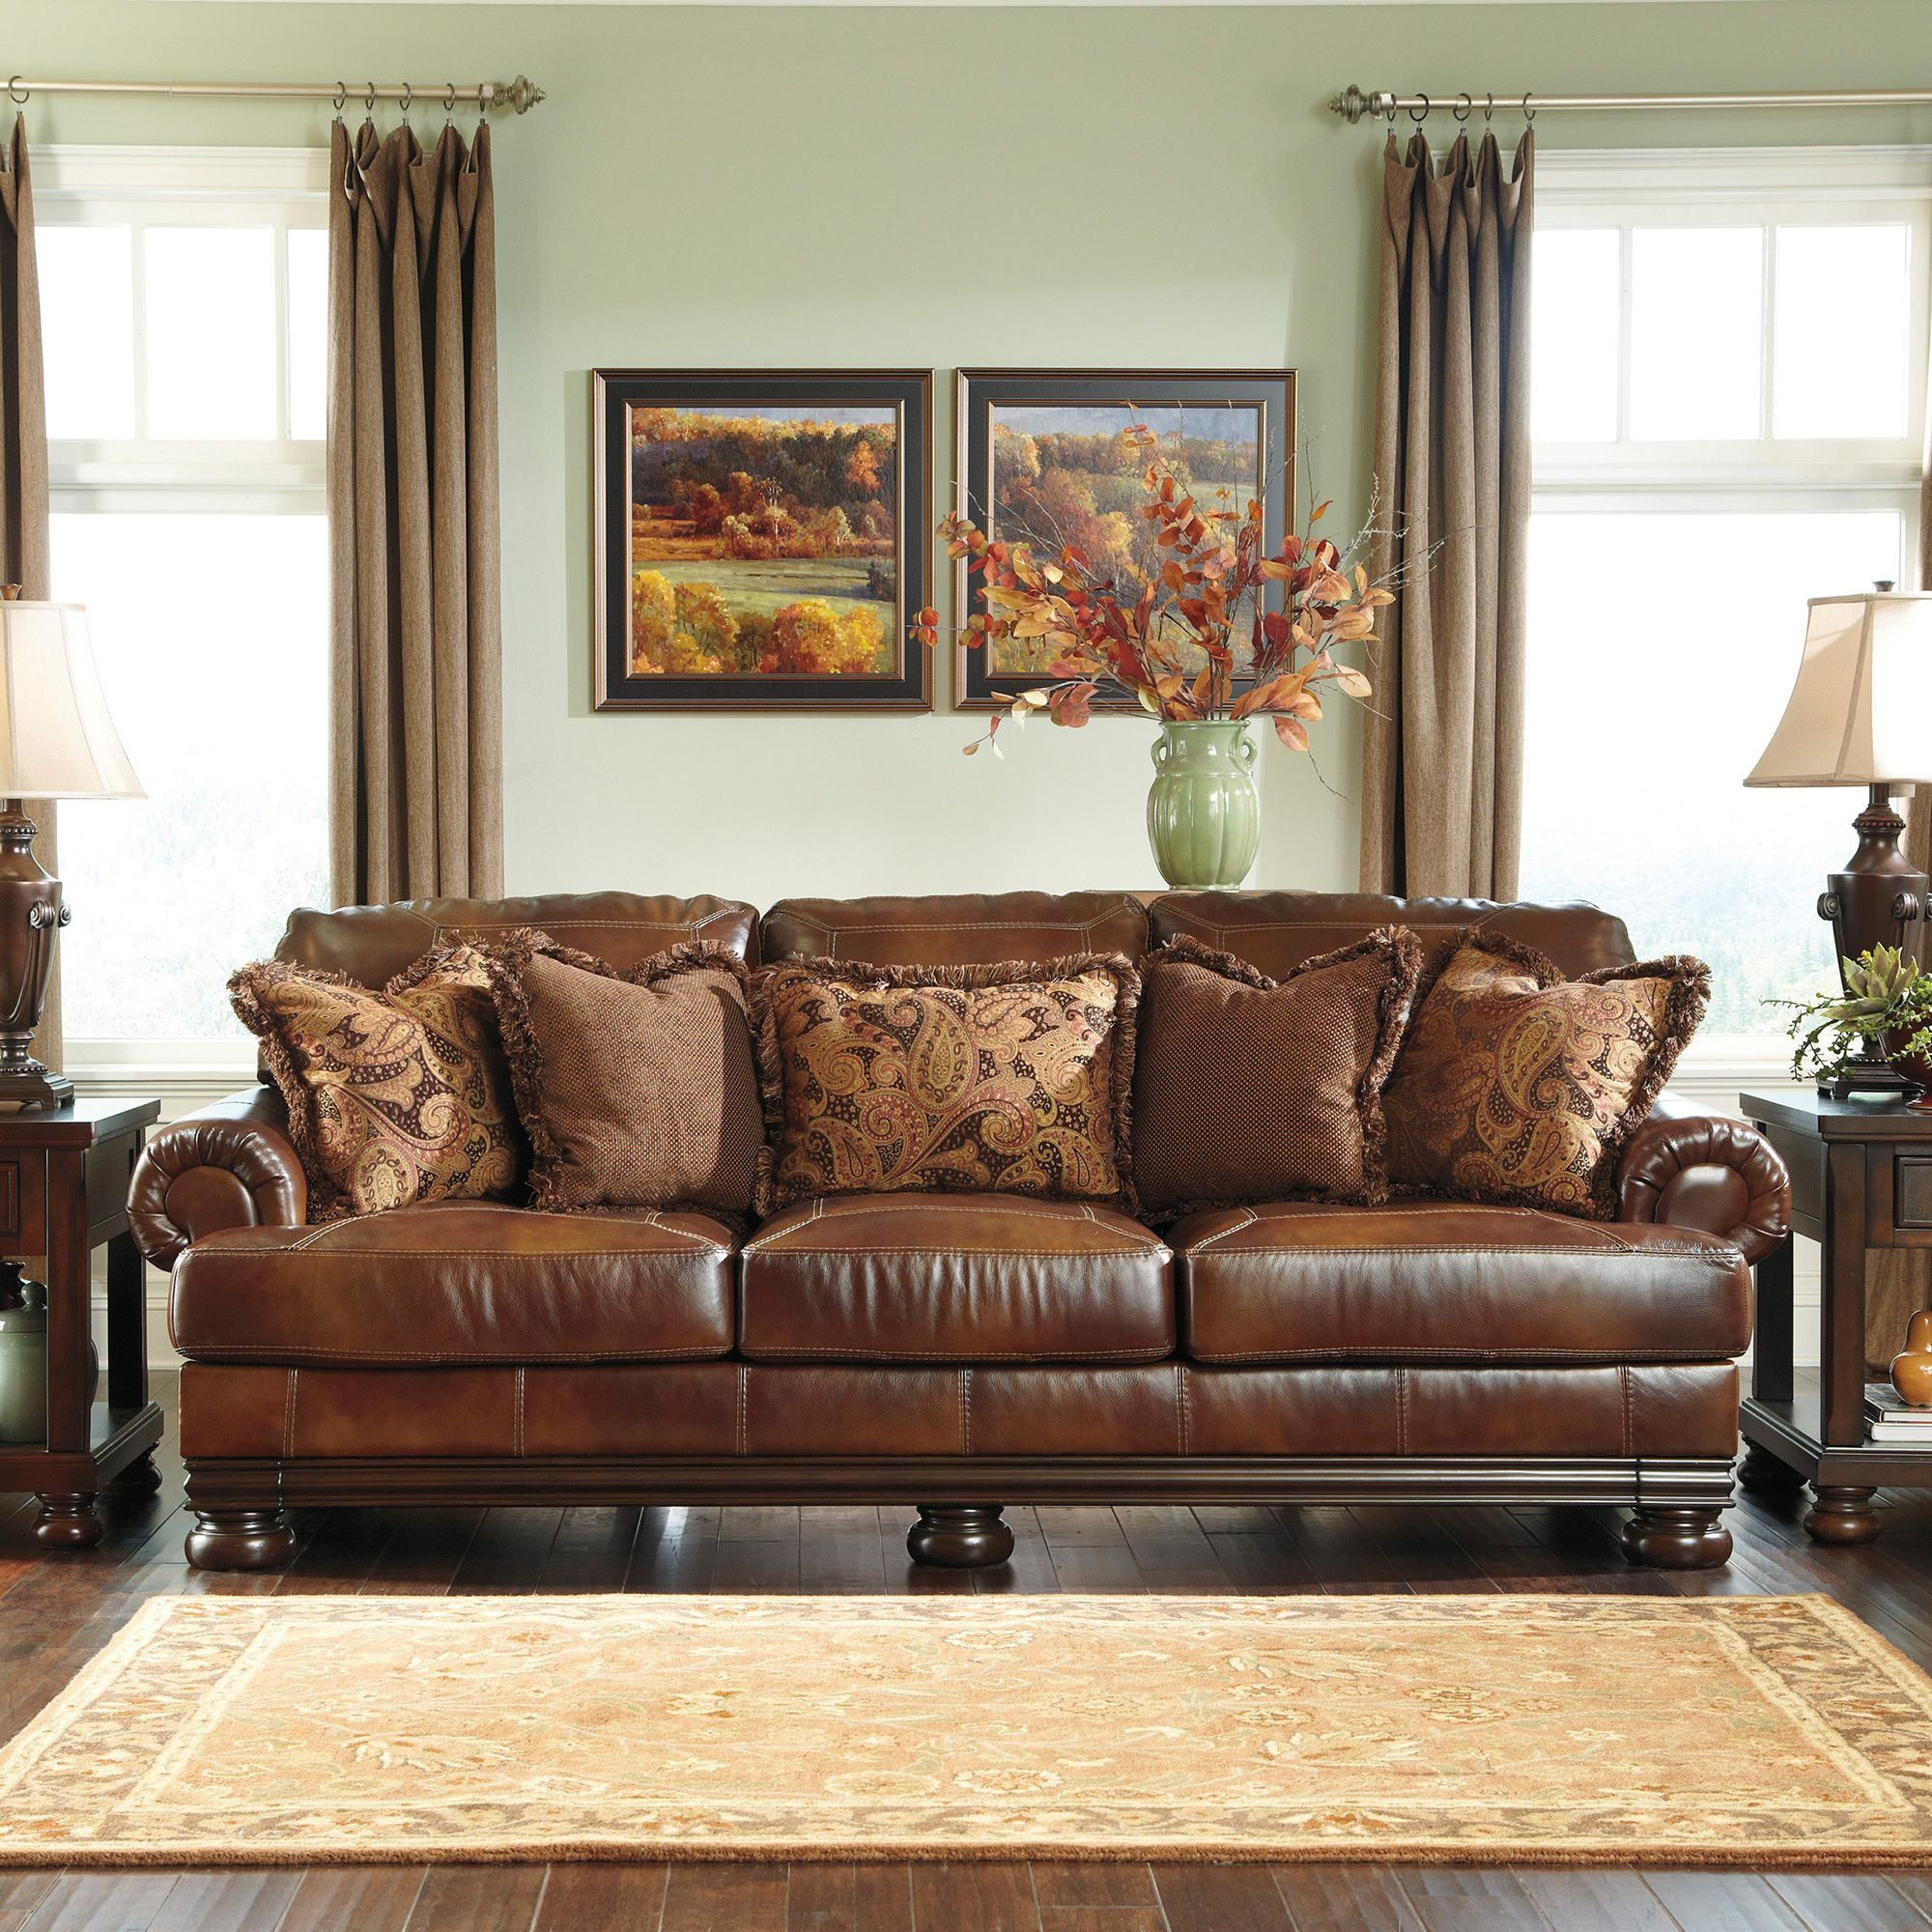 Signature Designs By Ashley U0027Hutchersonu0027 Harness Brown Leather Sofa |  Overstock.com Shopping